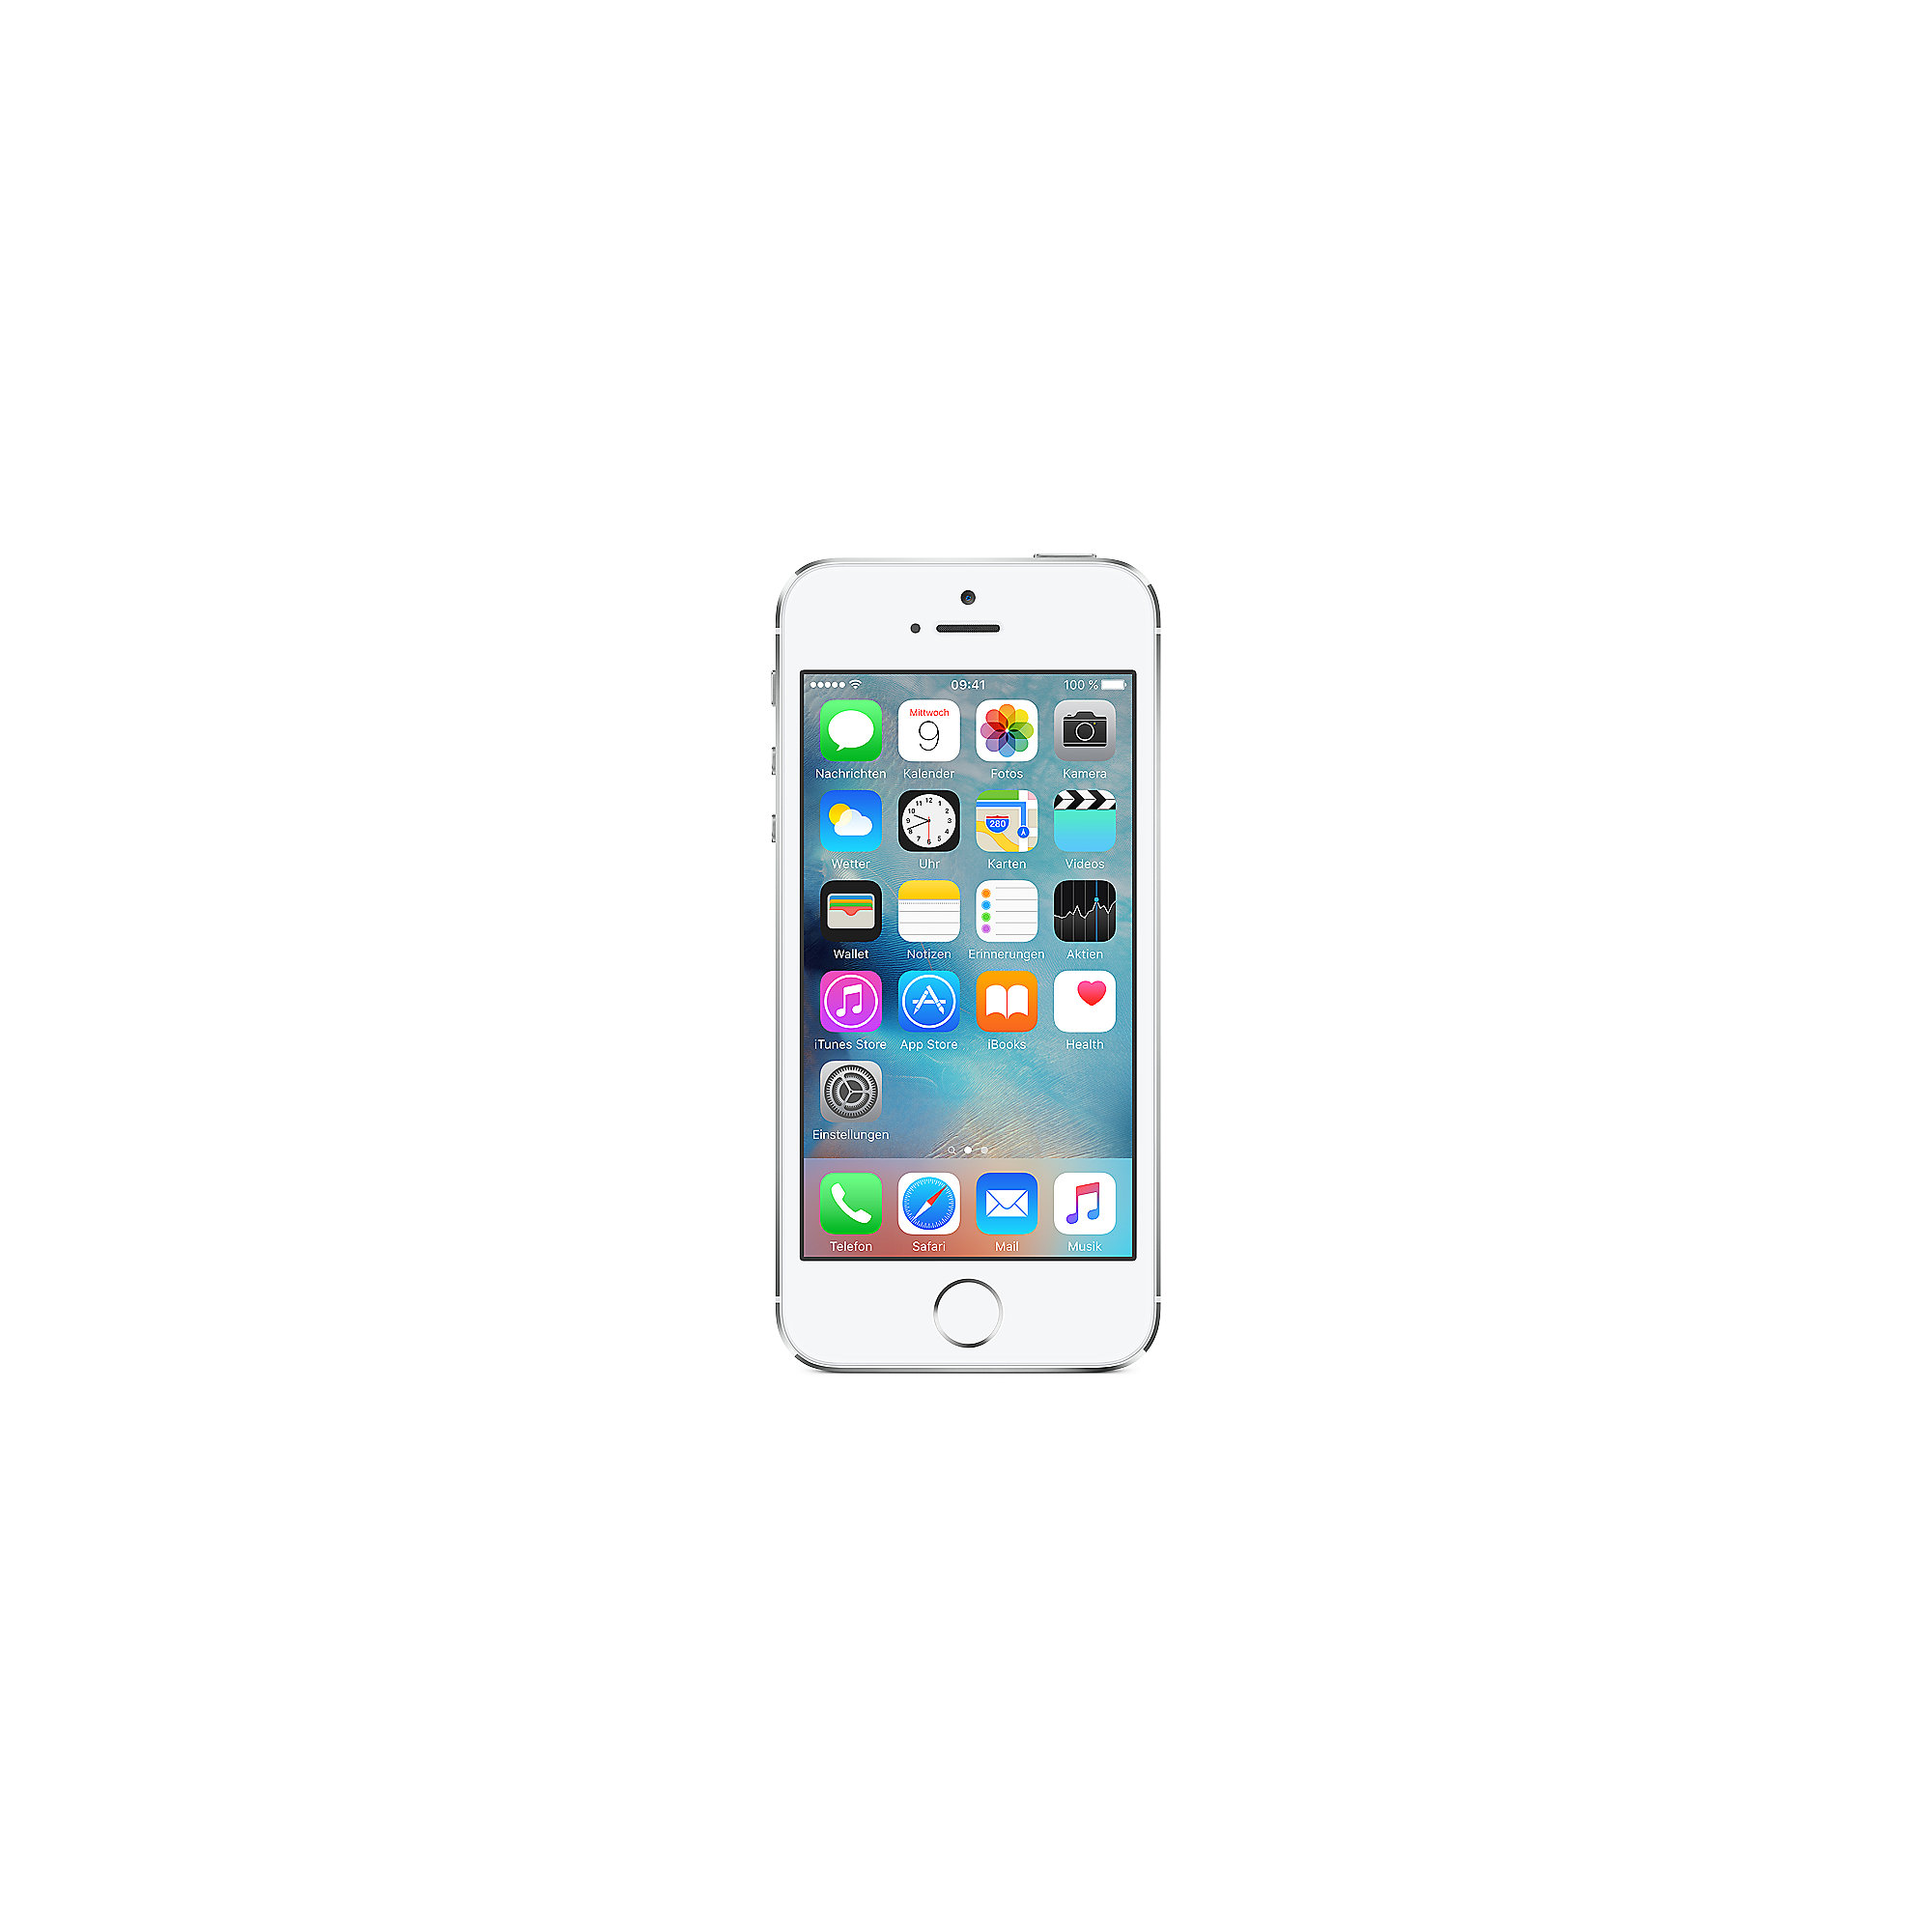 Apple iPhone 5s 16 GB silber 2ND refurbished